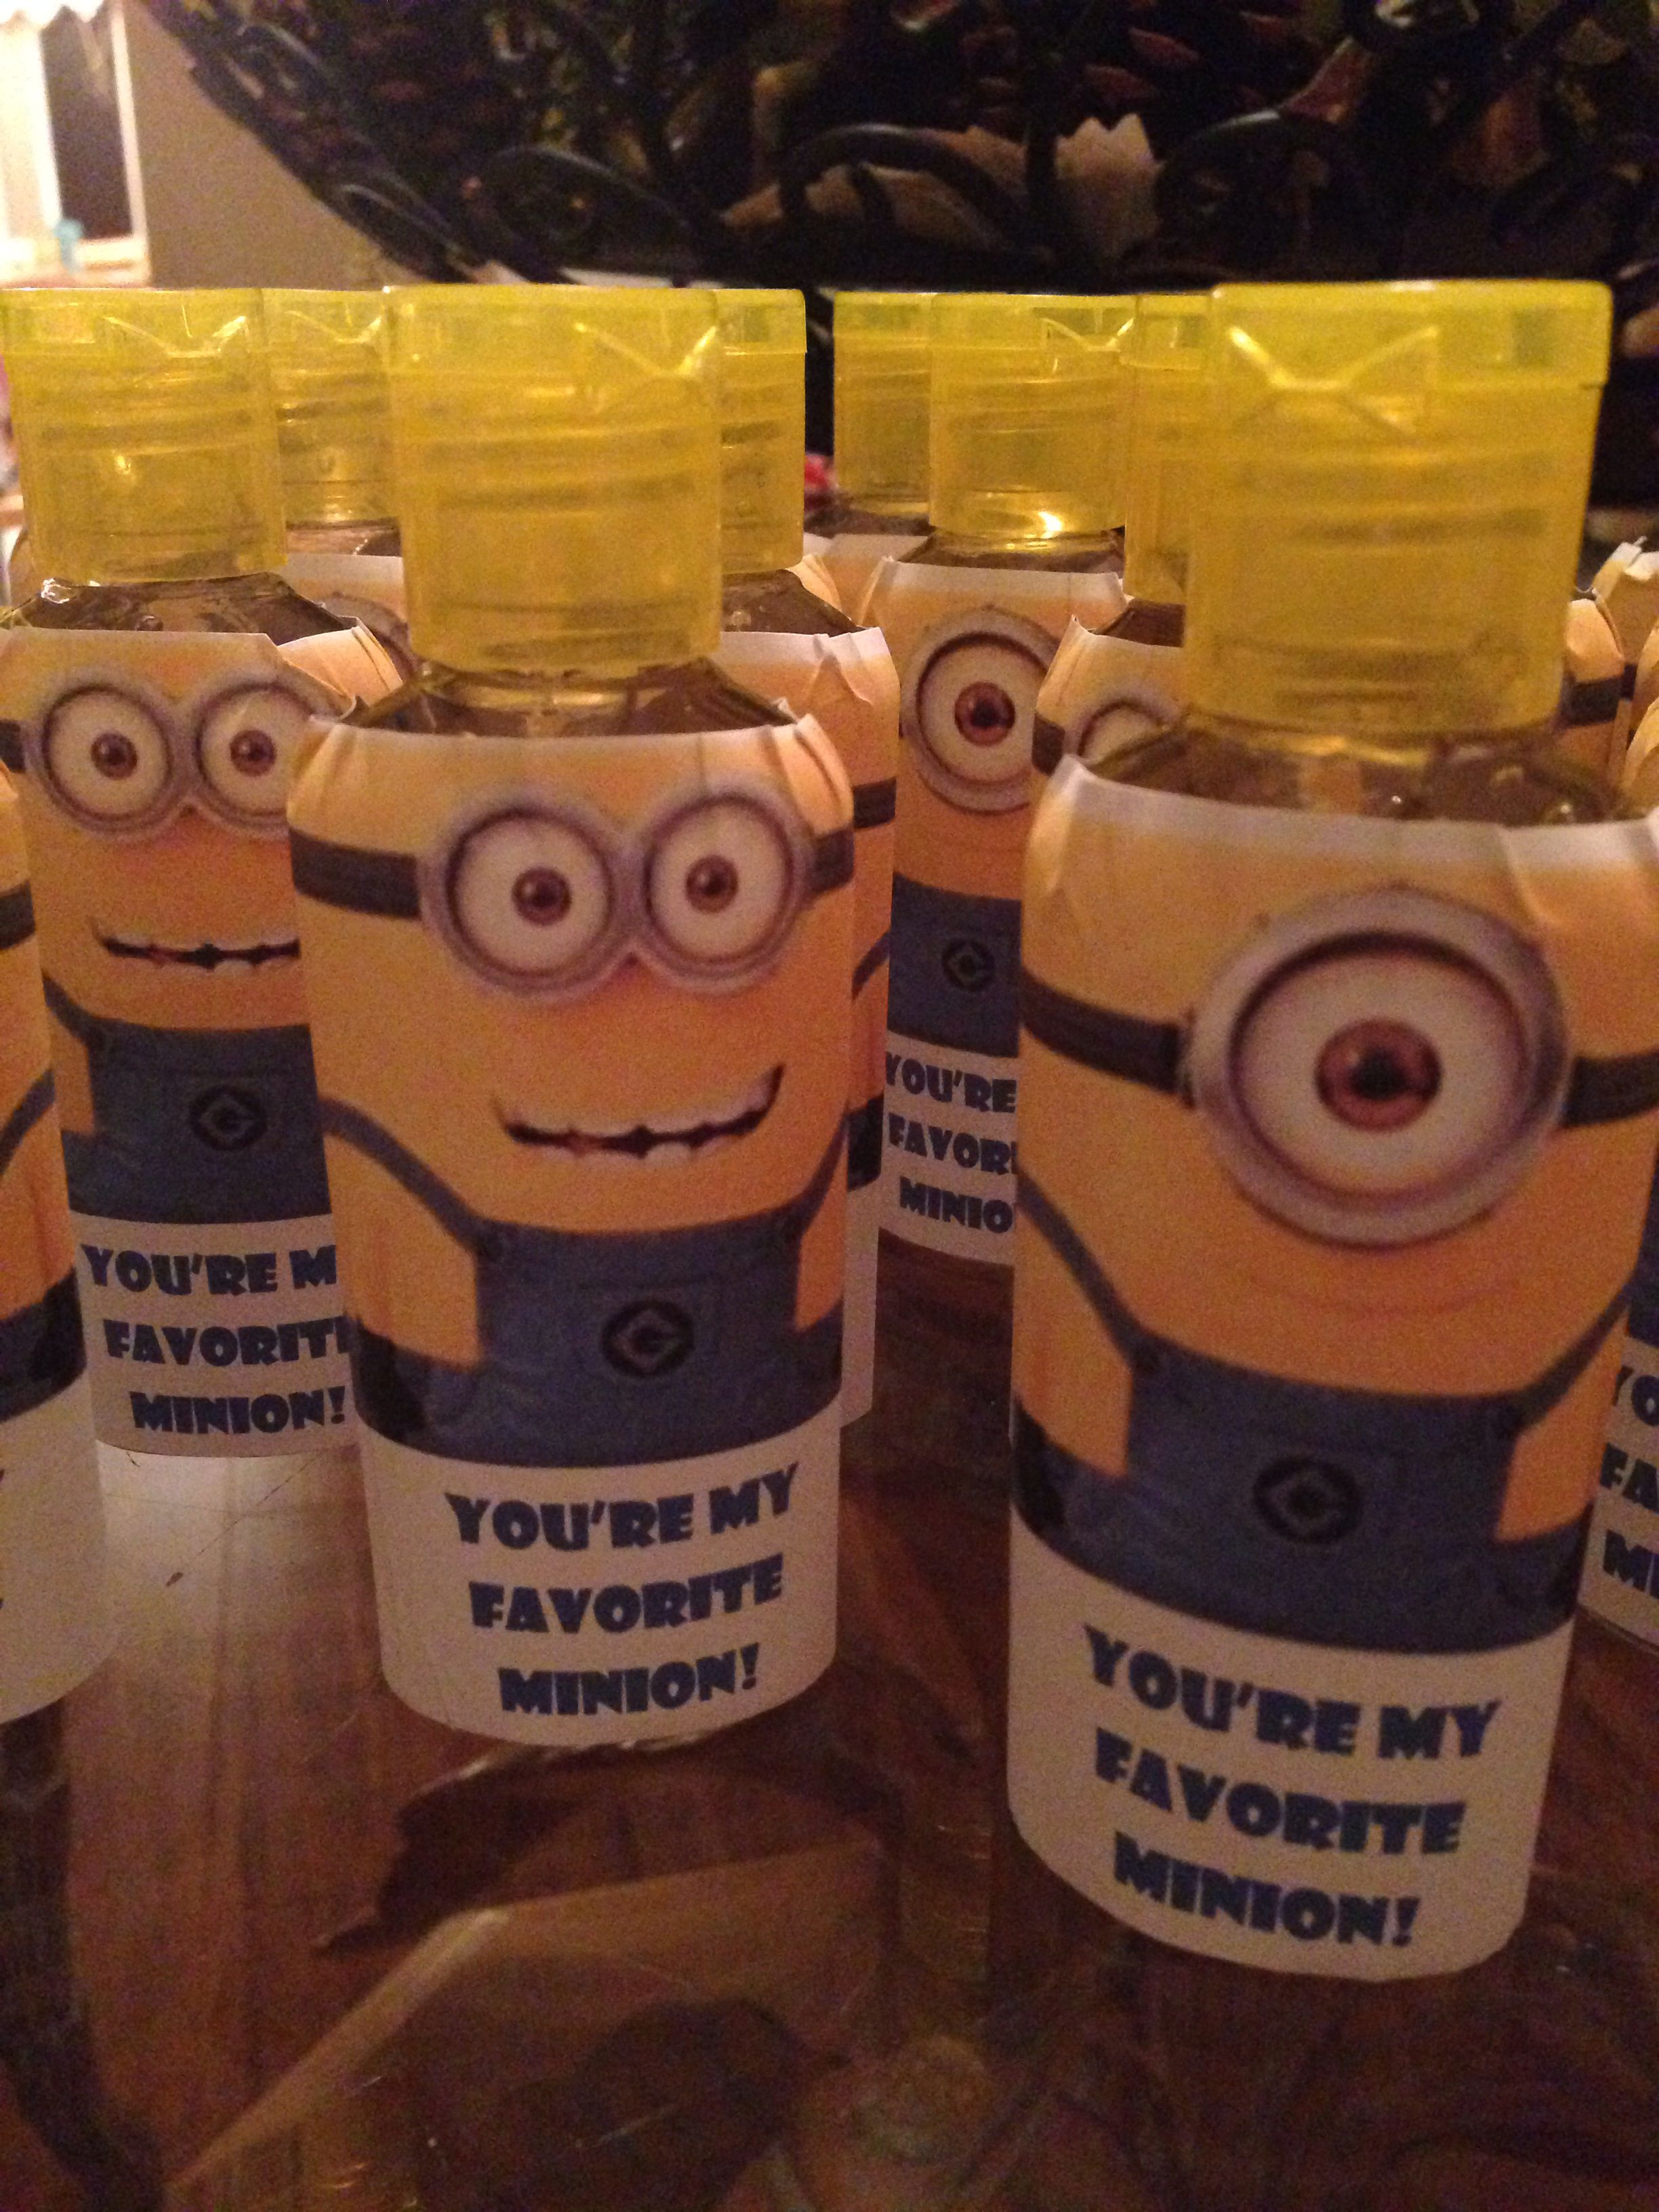 Minion Hand Sanitizers 3x4 Labels Dollar Store Sanitizer Minion